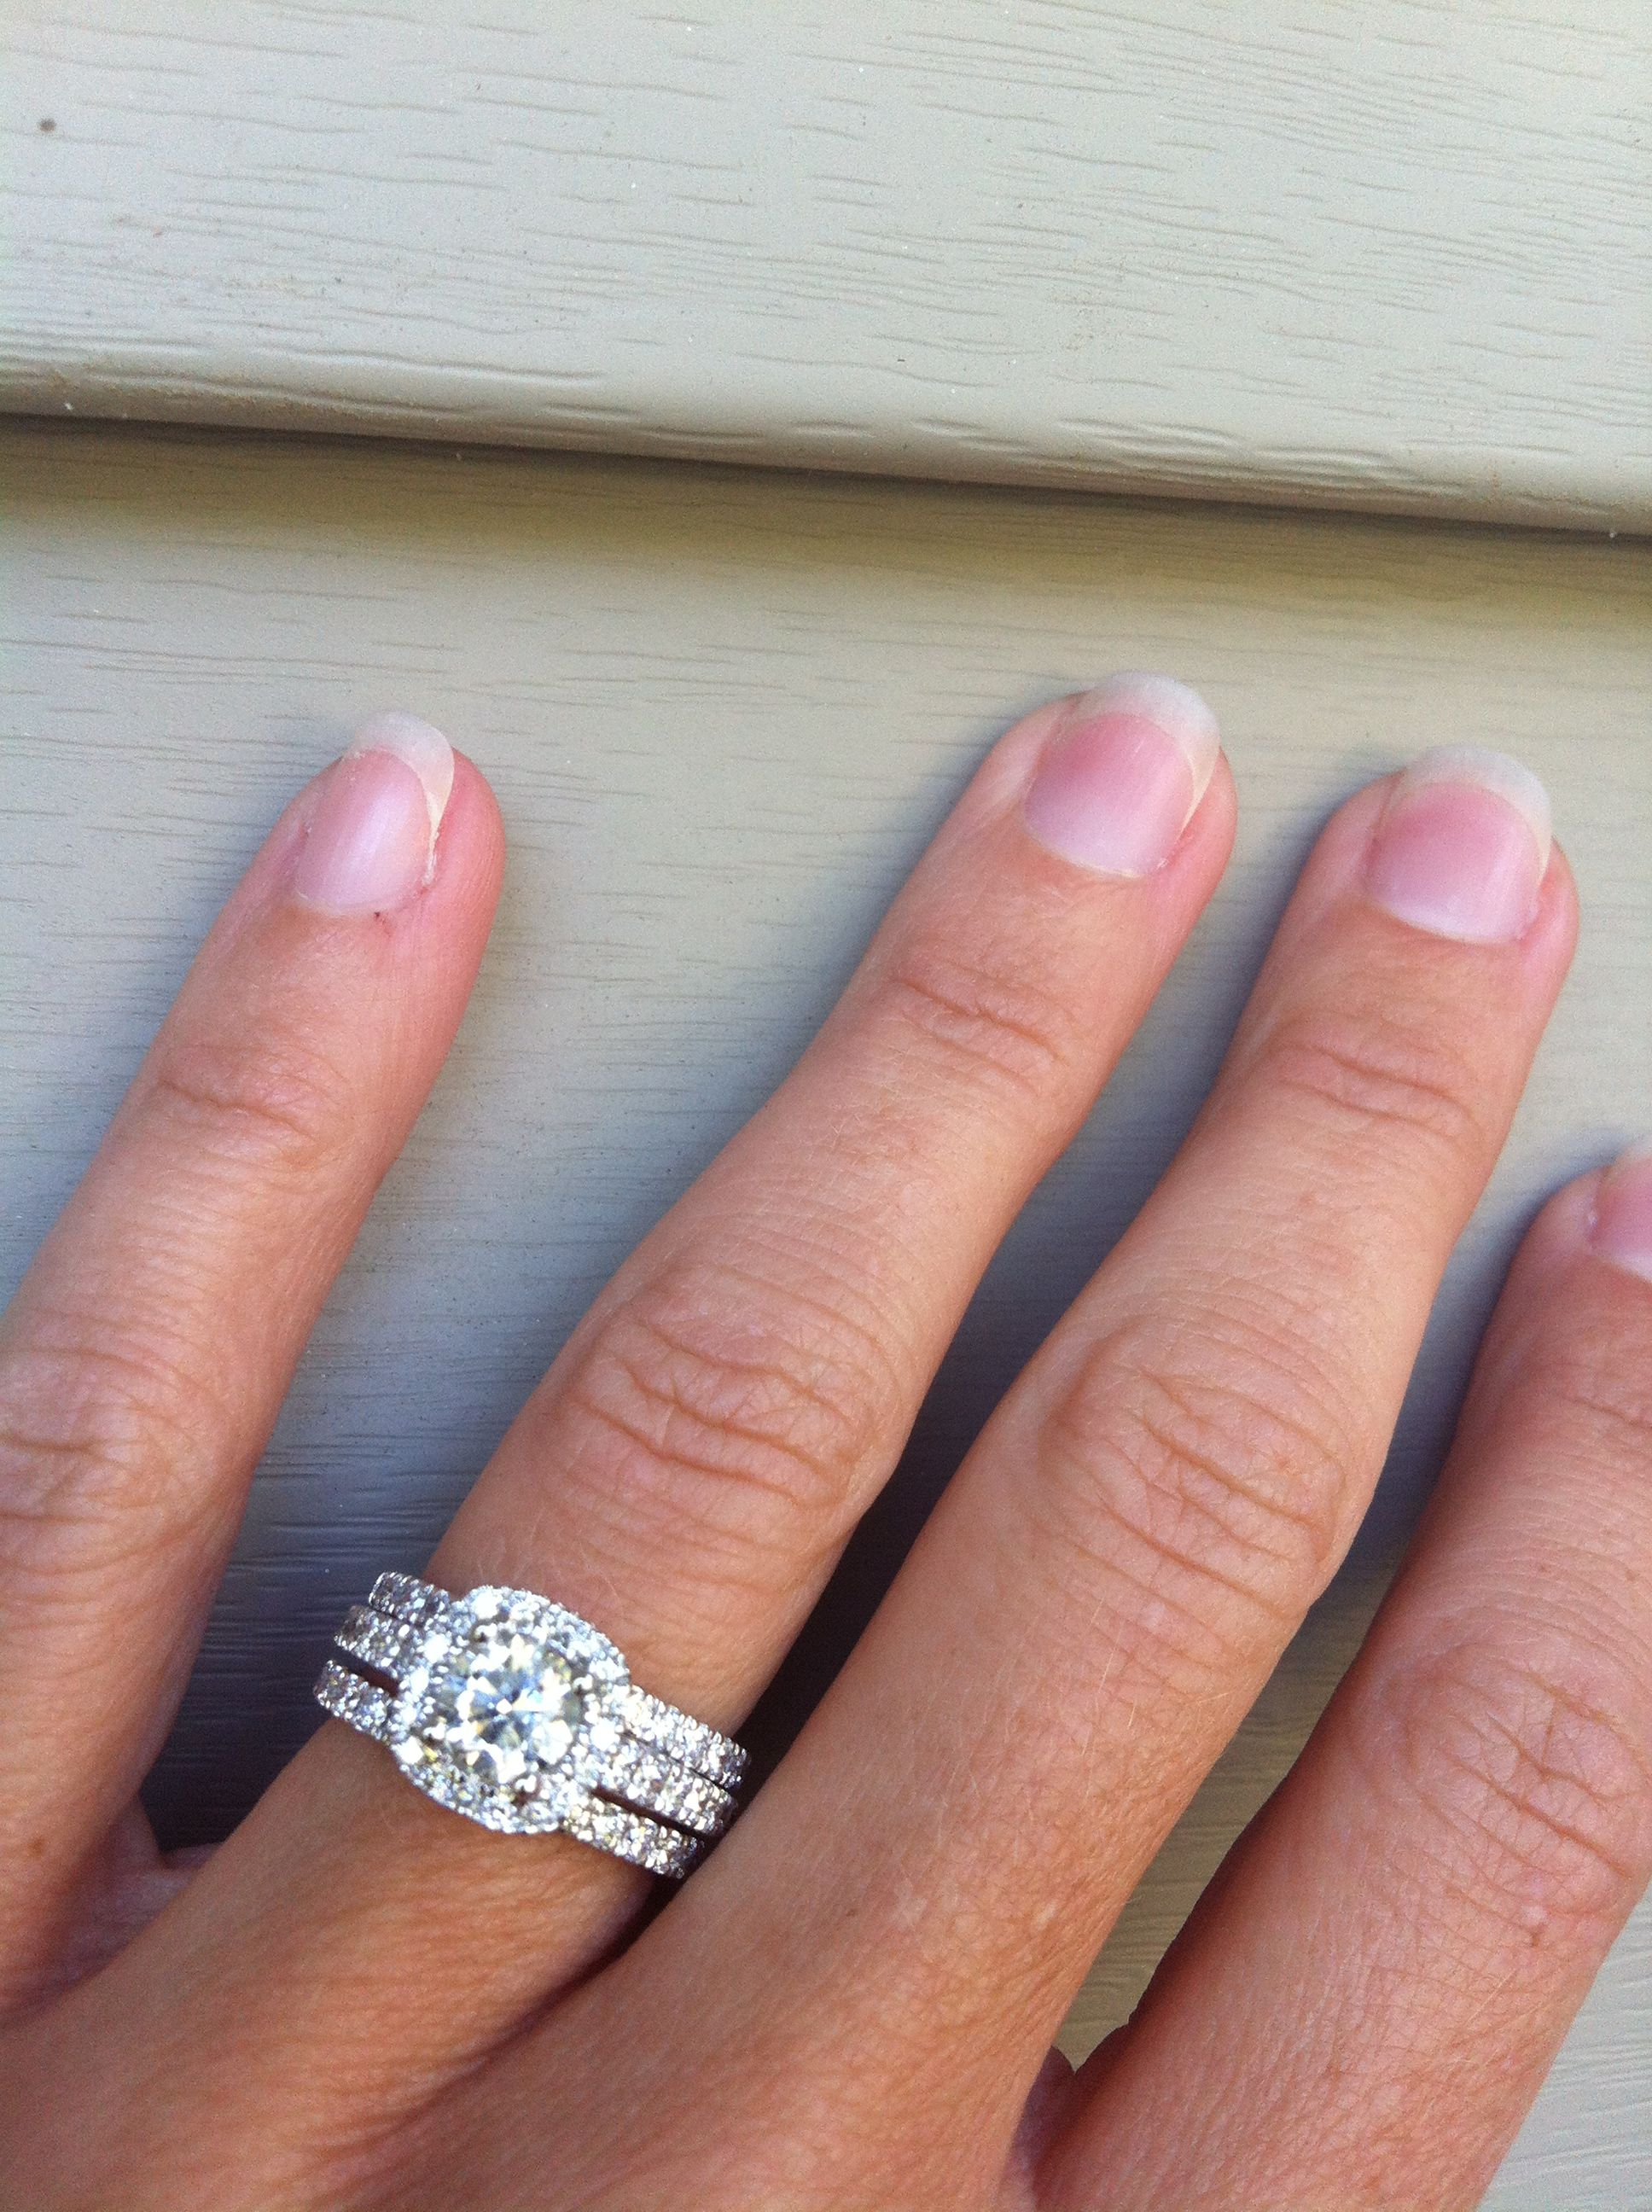 engagement en styling jewelry meets where cs quality best diamonds by rings verlovingsringen verlovingsring